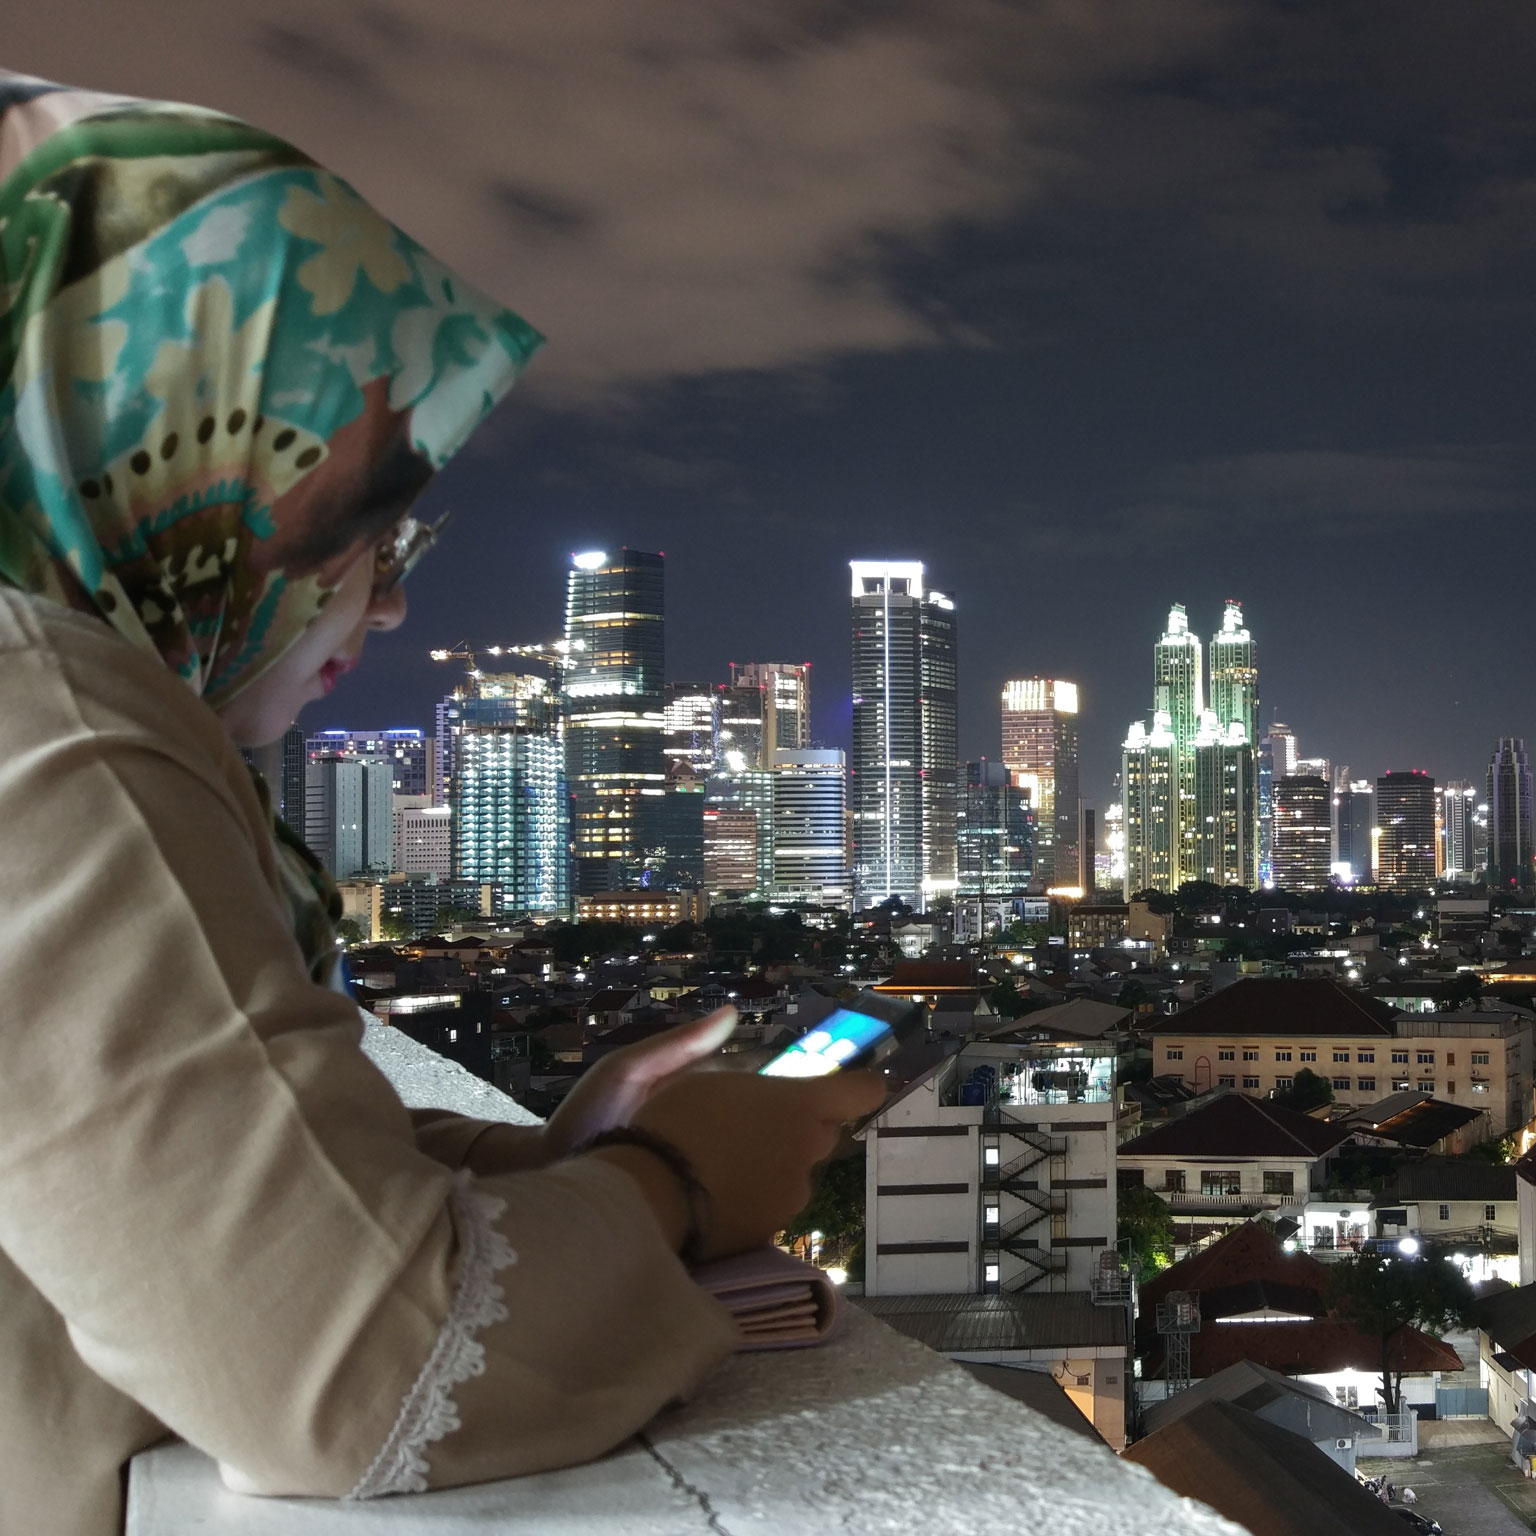 Digital banking in Indonesia: Building loyalty and generating growth